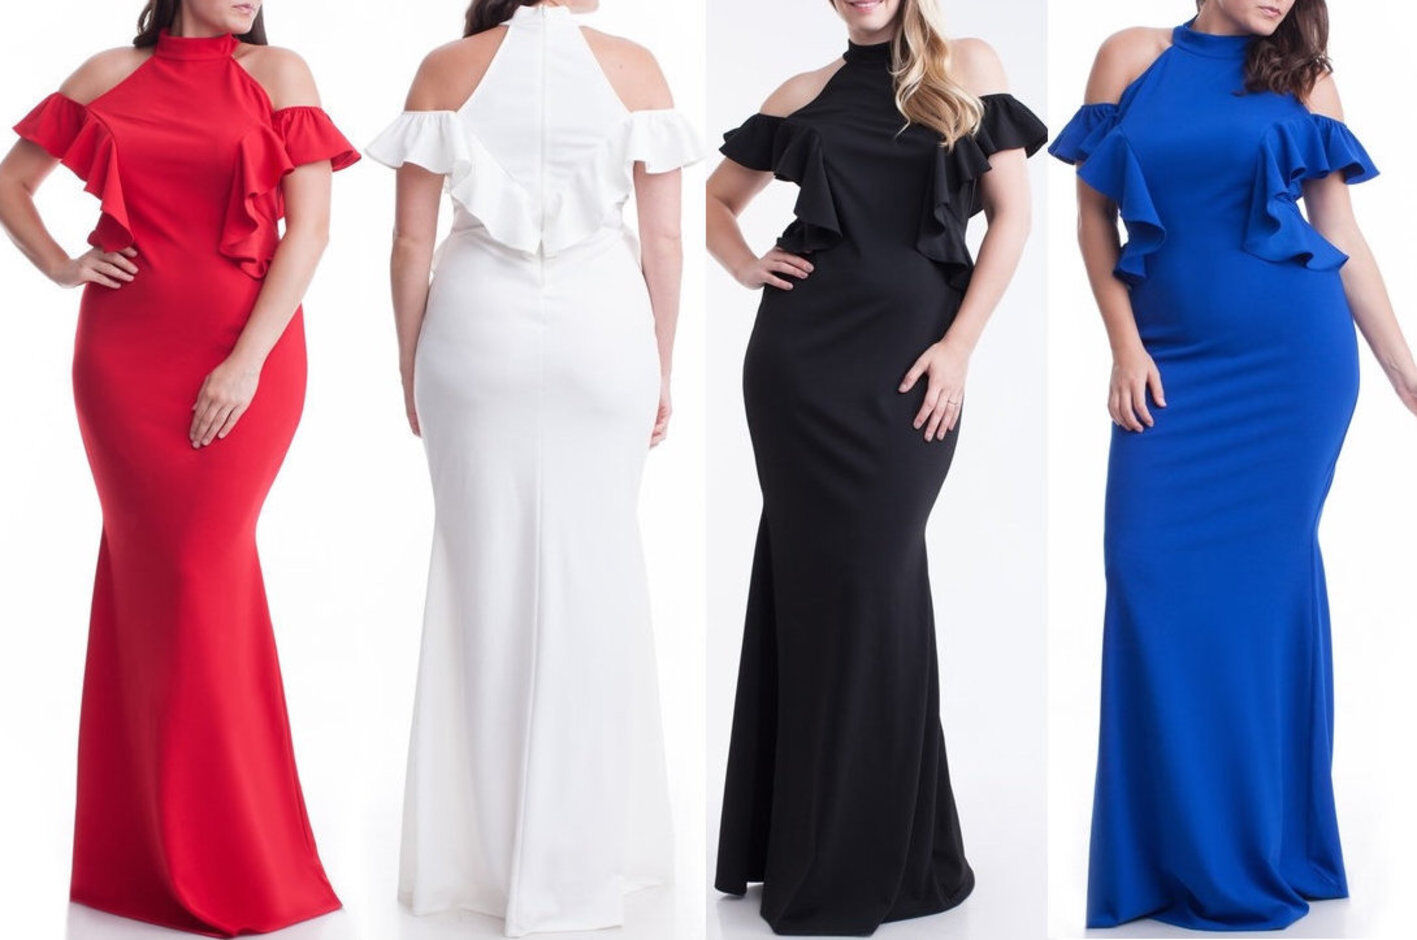 Plus Size Ruffle Cut Out Cold Shoulder Mermaid Maxi Dress Hourglass Gown